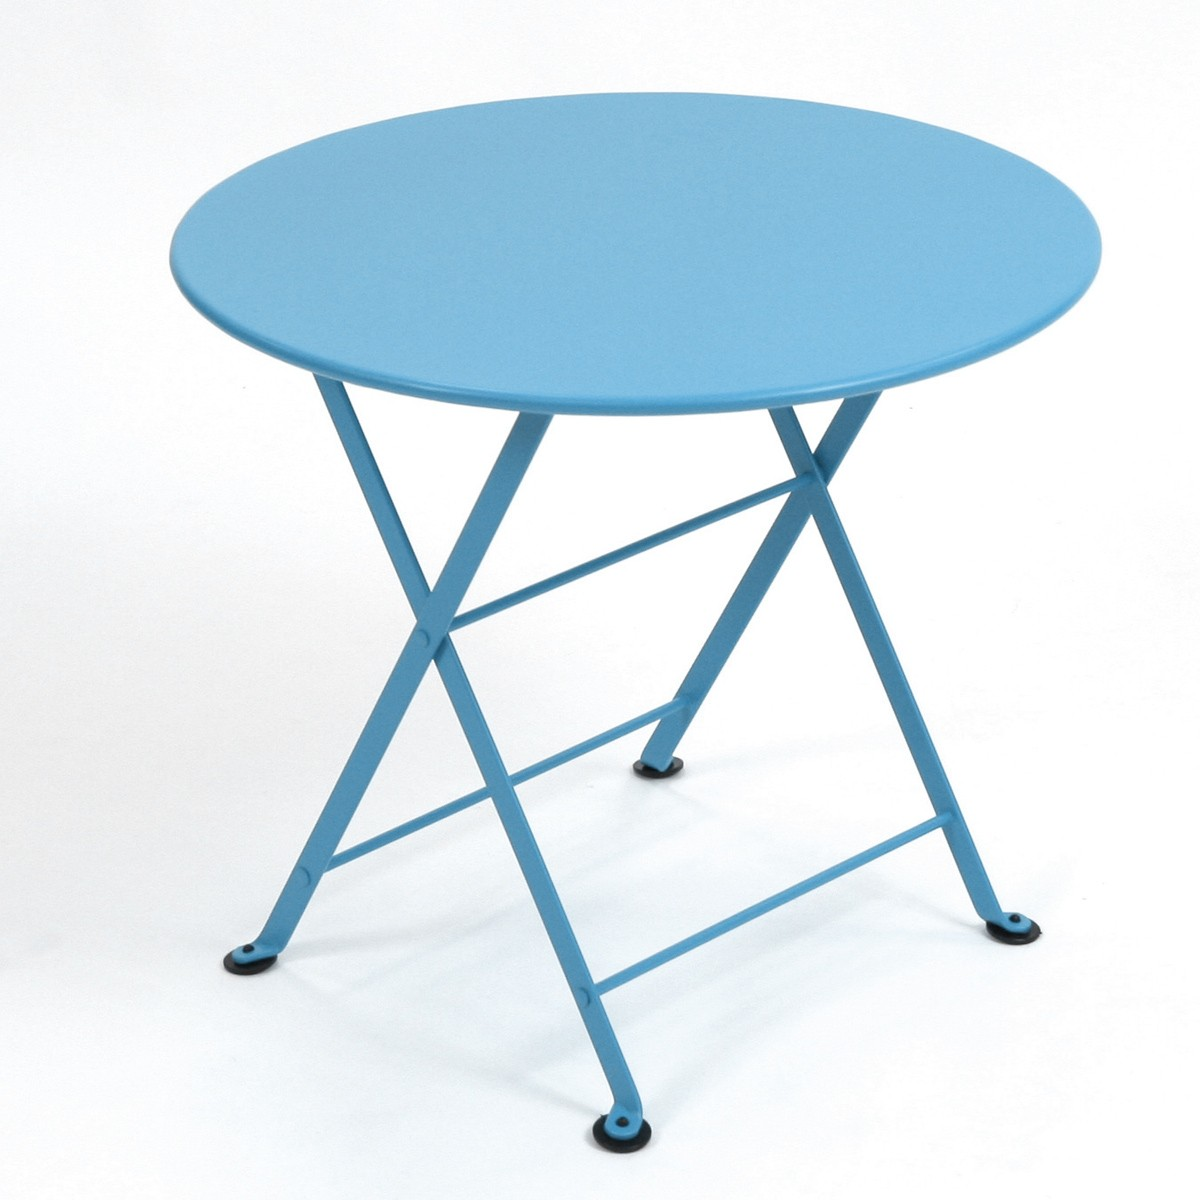 table basse enfant tom pouce de fermob bleu turquoise. Black Bedroom Furniture Sets. Home Design Ideas